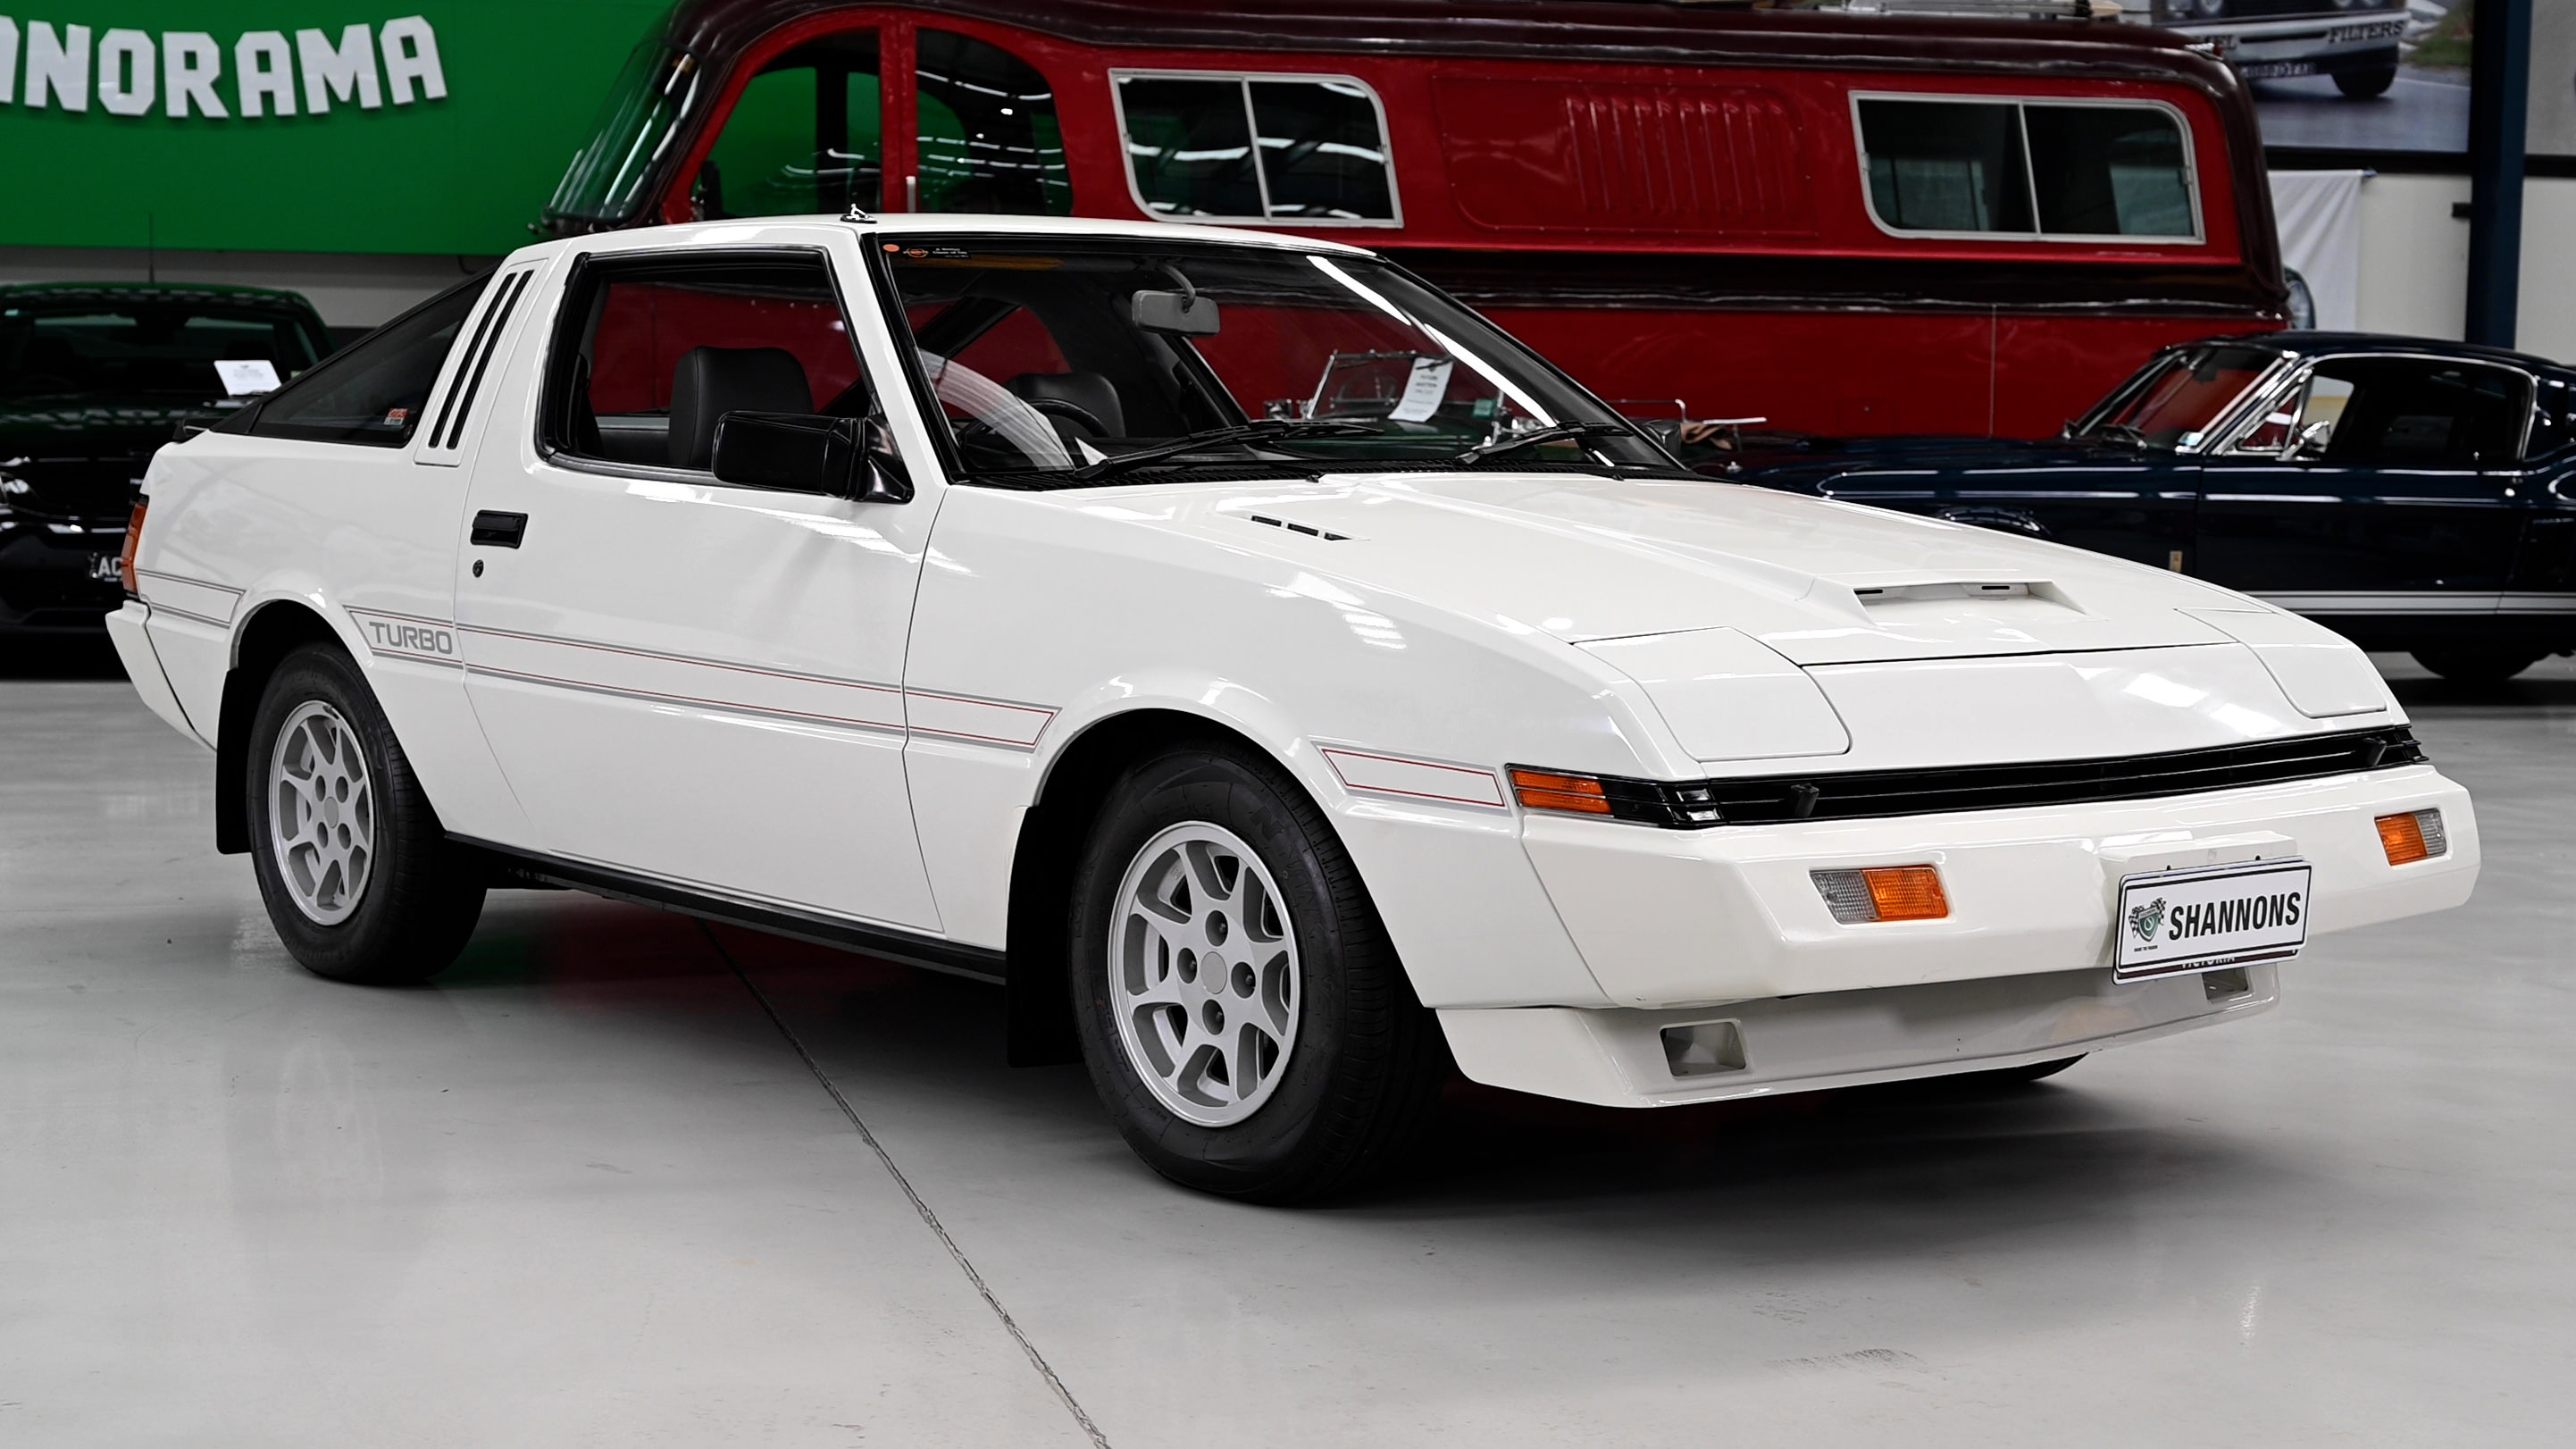 1982 Mitsubishi Starion JA 'Turbo' Hatchback - 2021 Shannons Autumn Timed Online Auction